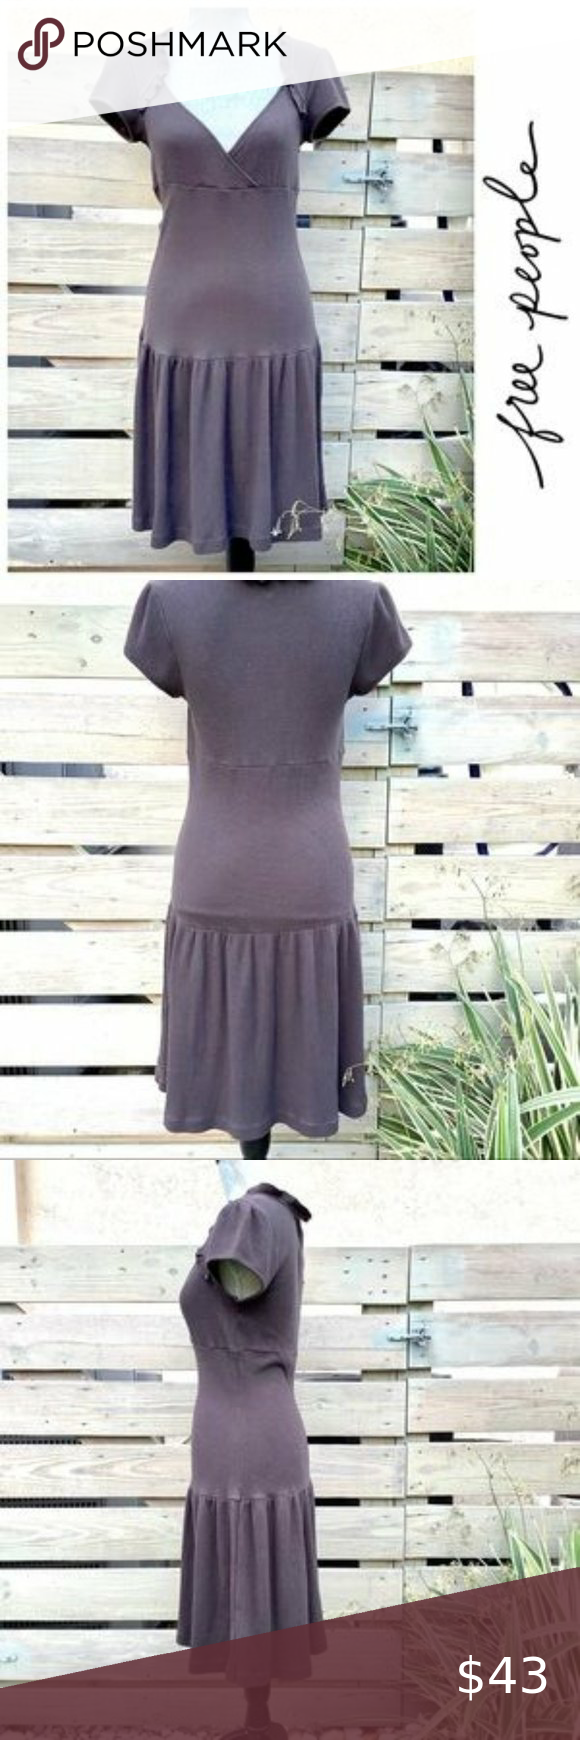 Free People Waffle Knit Dress Gray Waffle Knit Cotton Makes This Classic Dress Both Casual And Comfortable The Short Sleeves Fashion Clothes Design Knit Dress [ 1740 x 580 Pixel ]